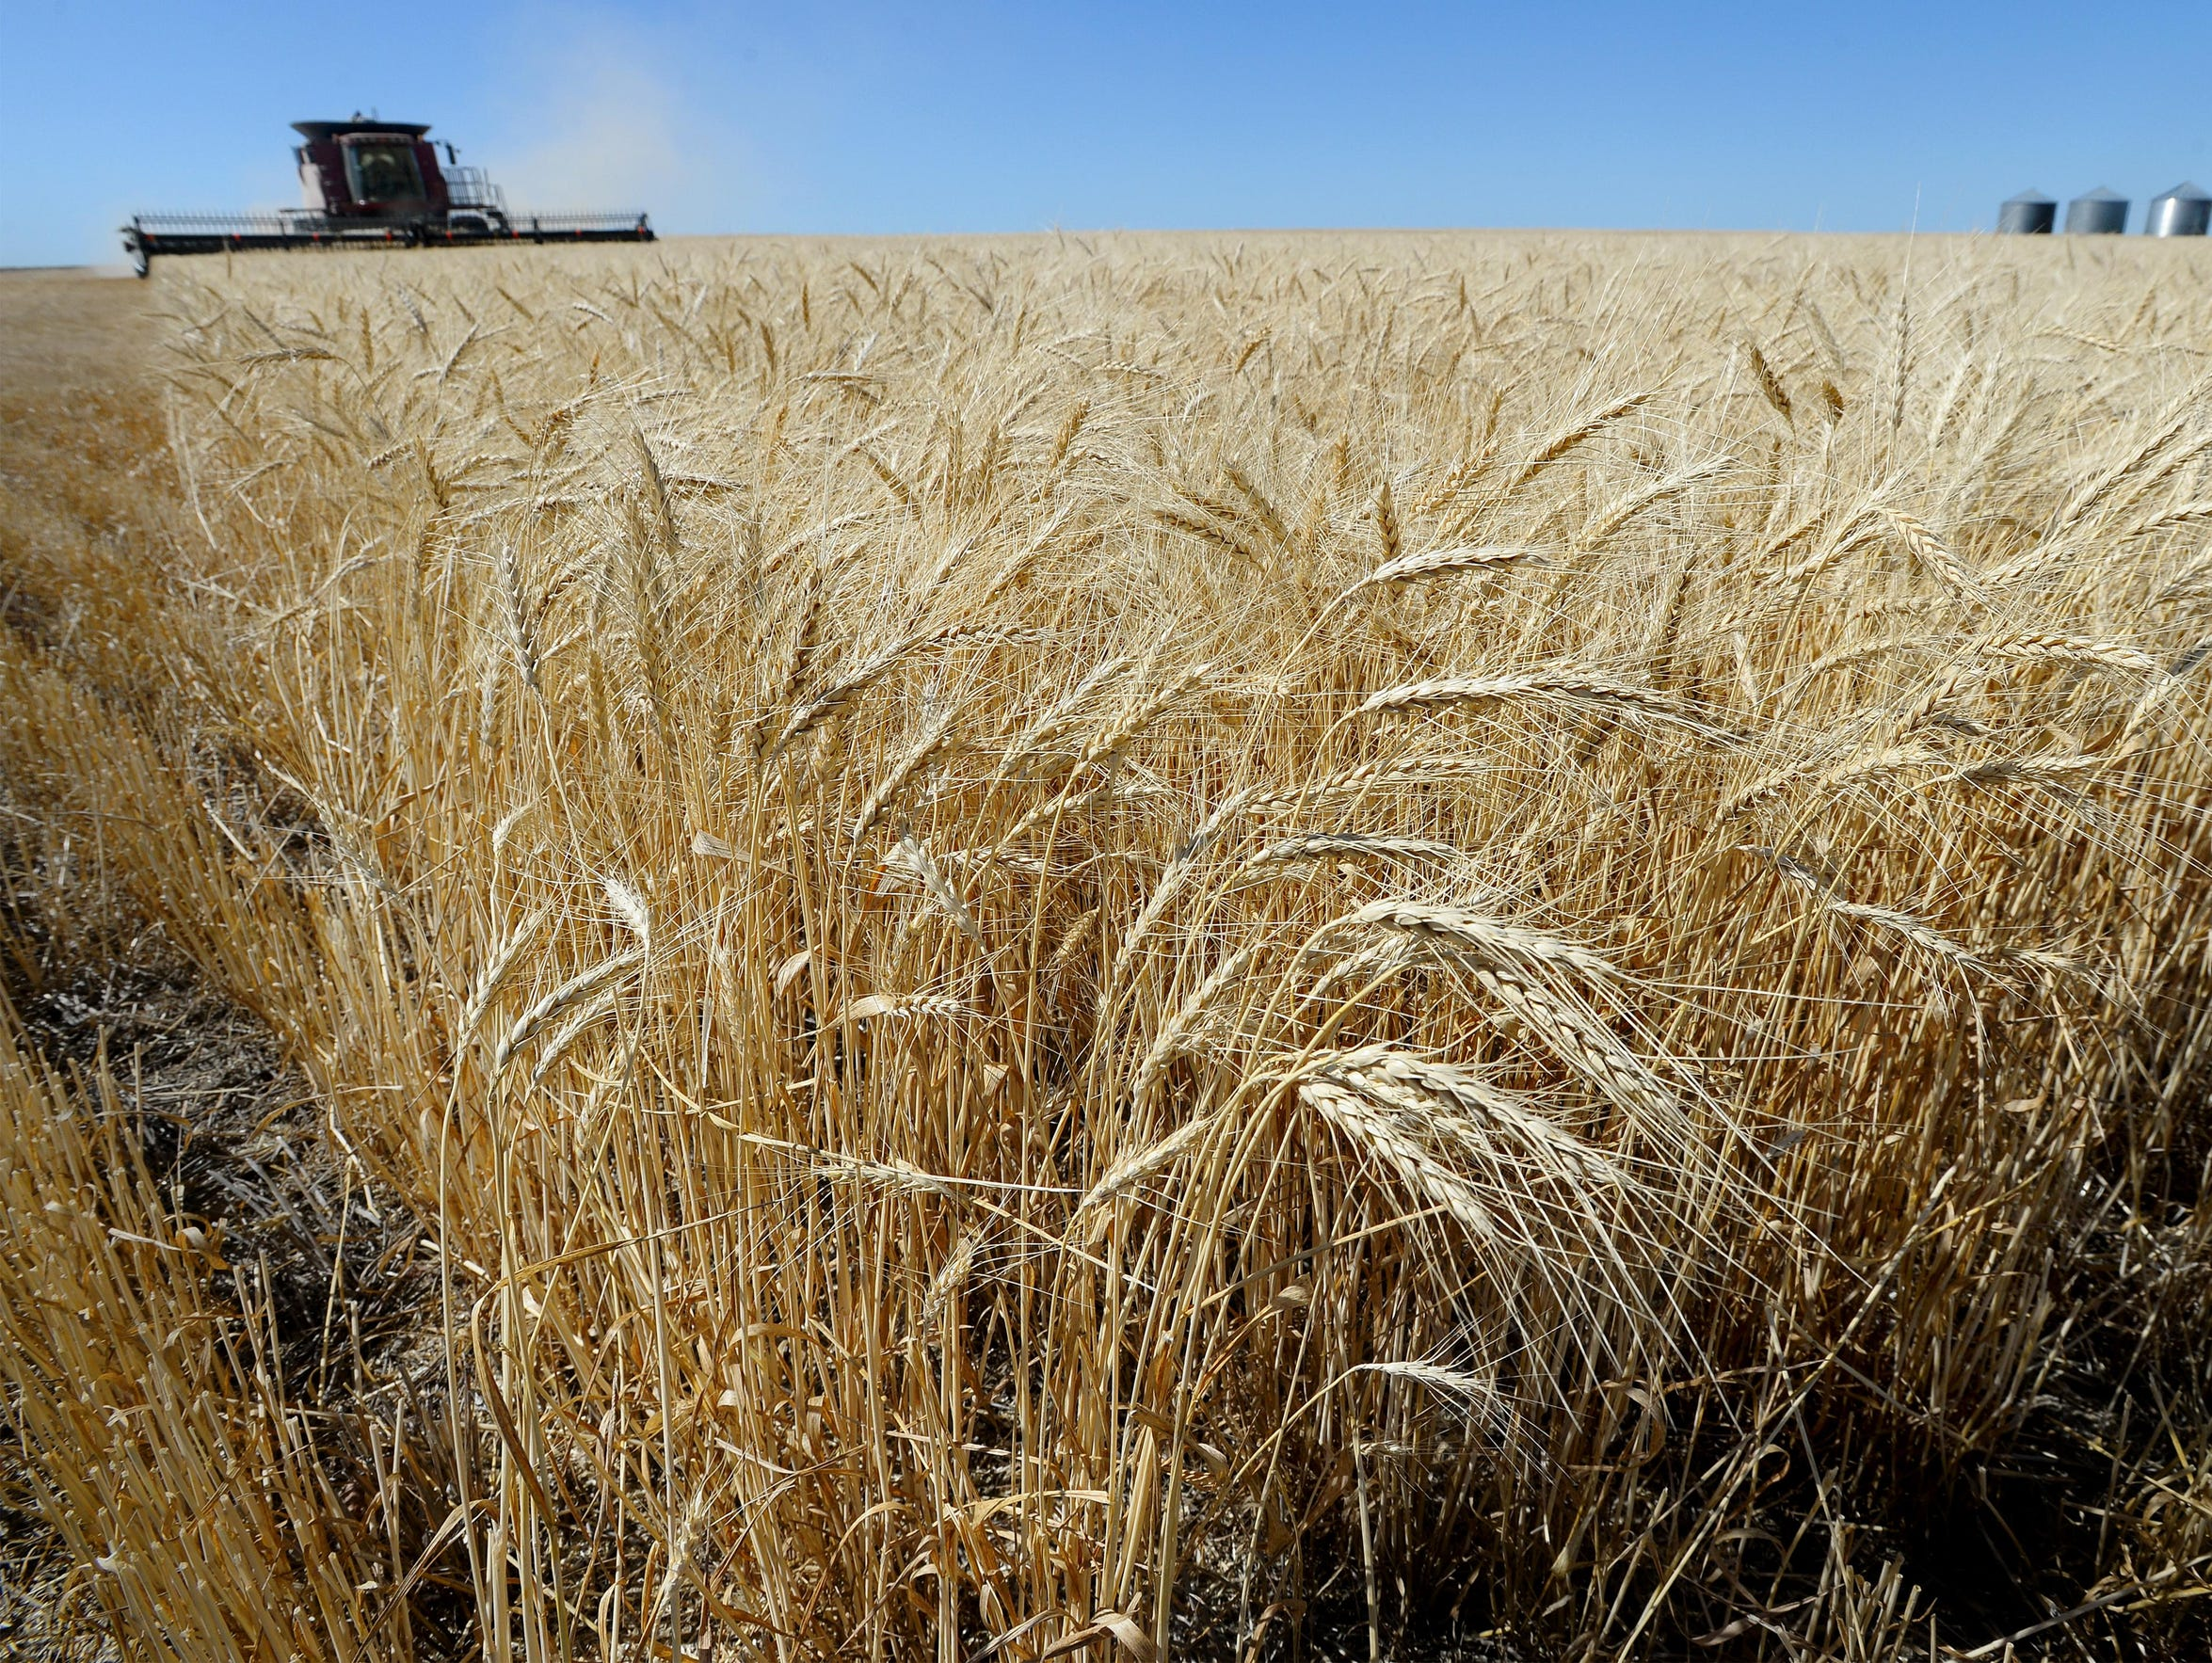 Wheat growers around the area are harvesting their